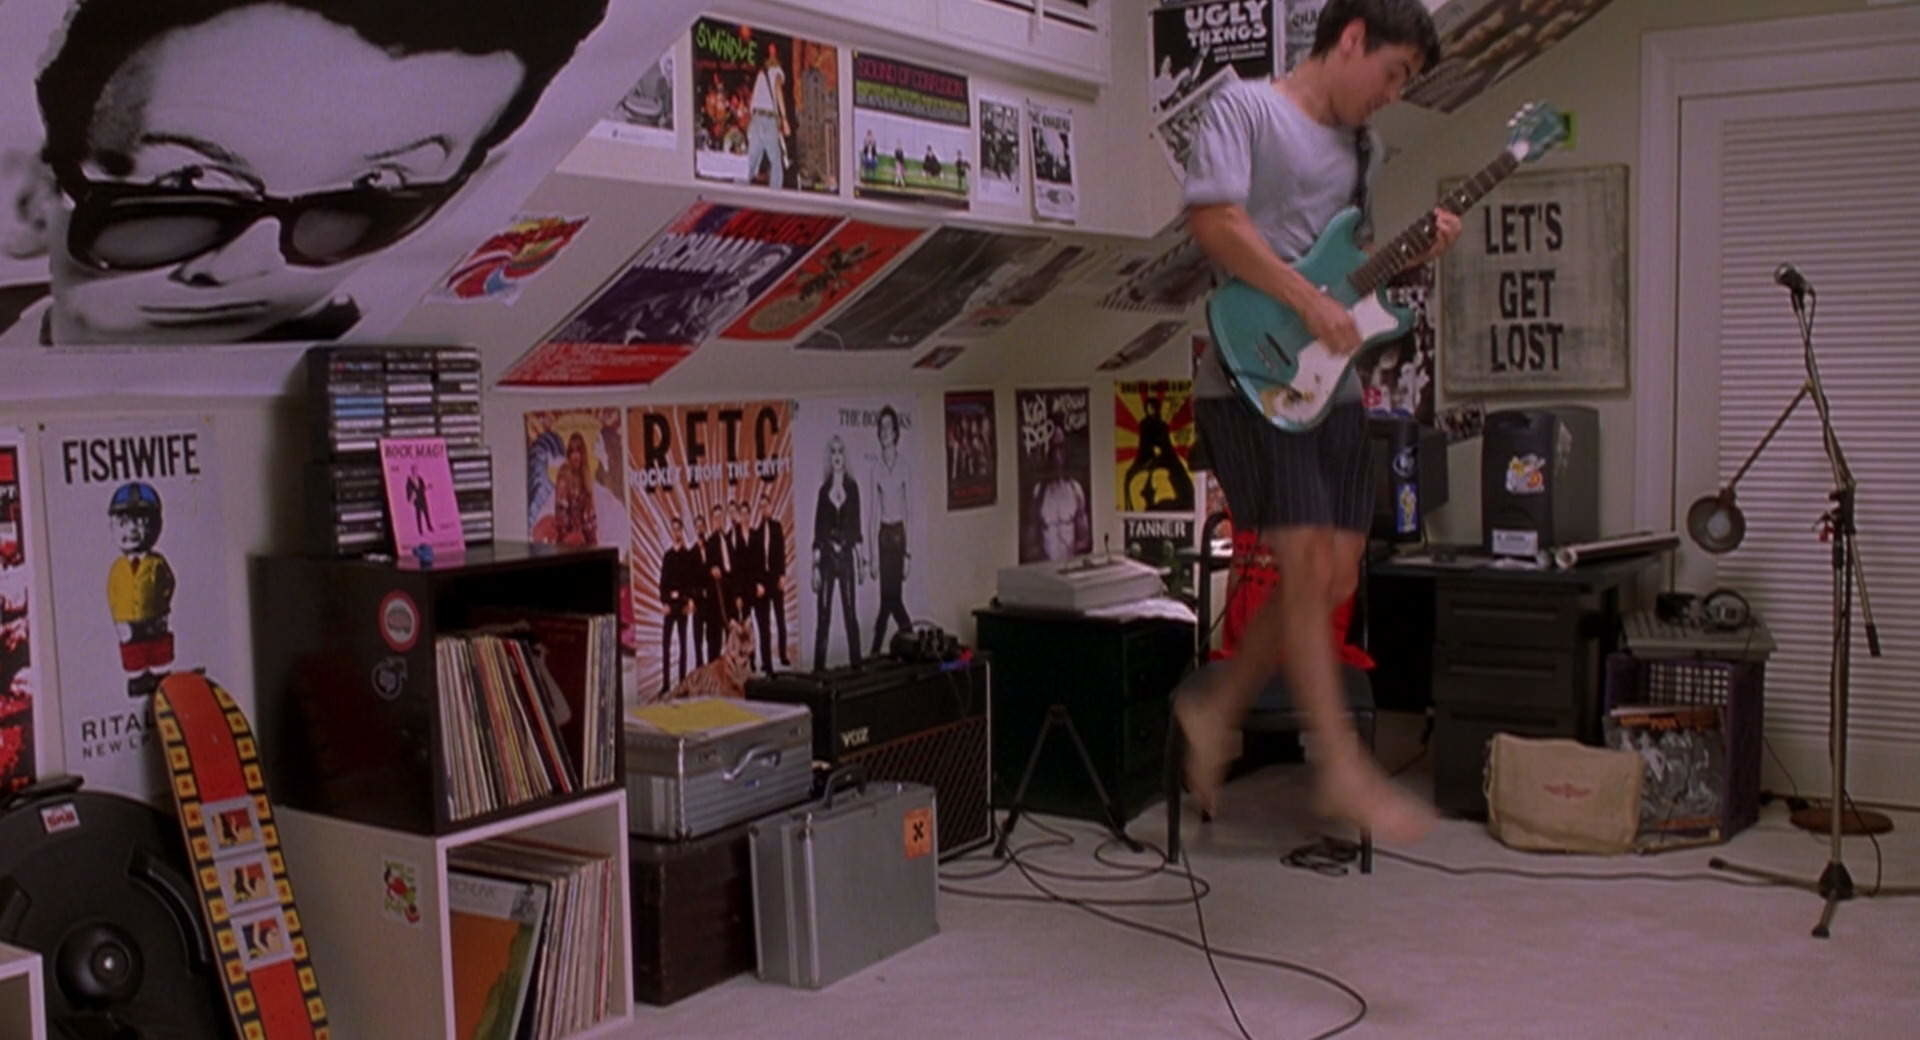 Cliff jumps around his room playing guitar.